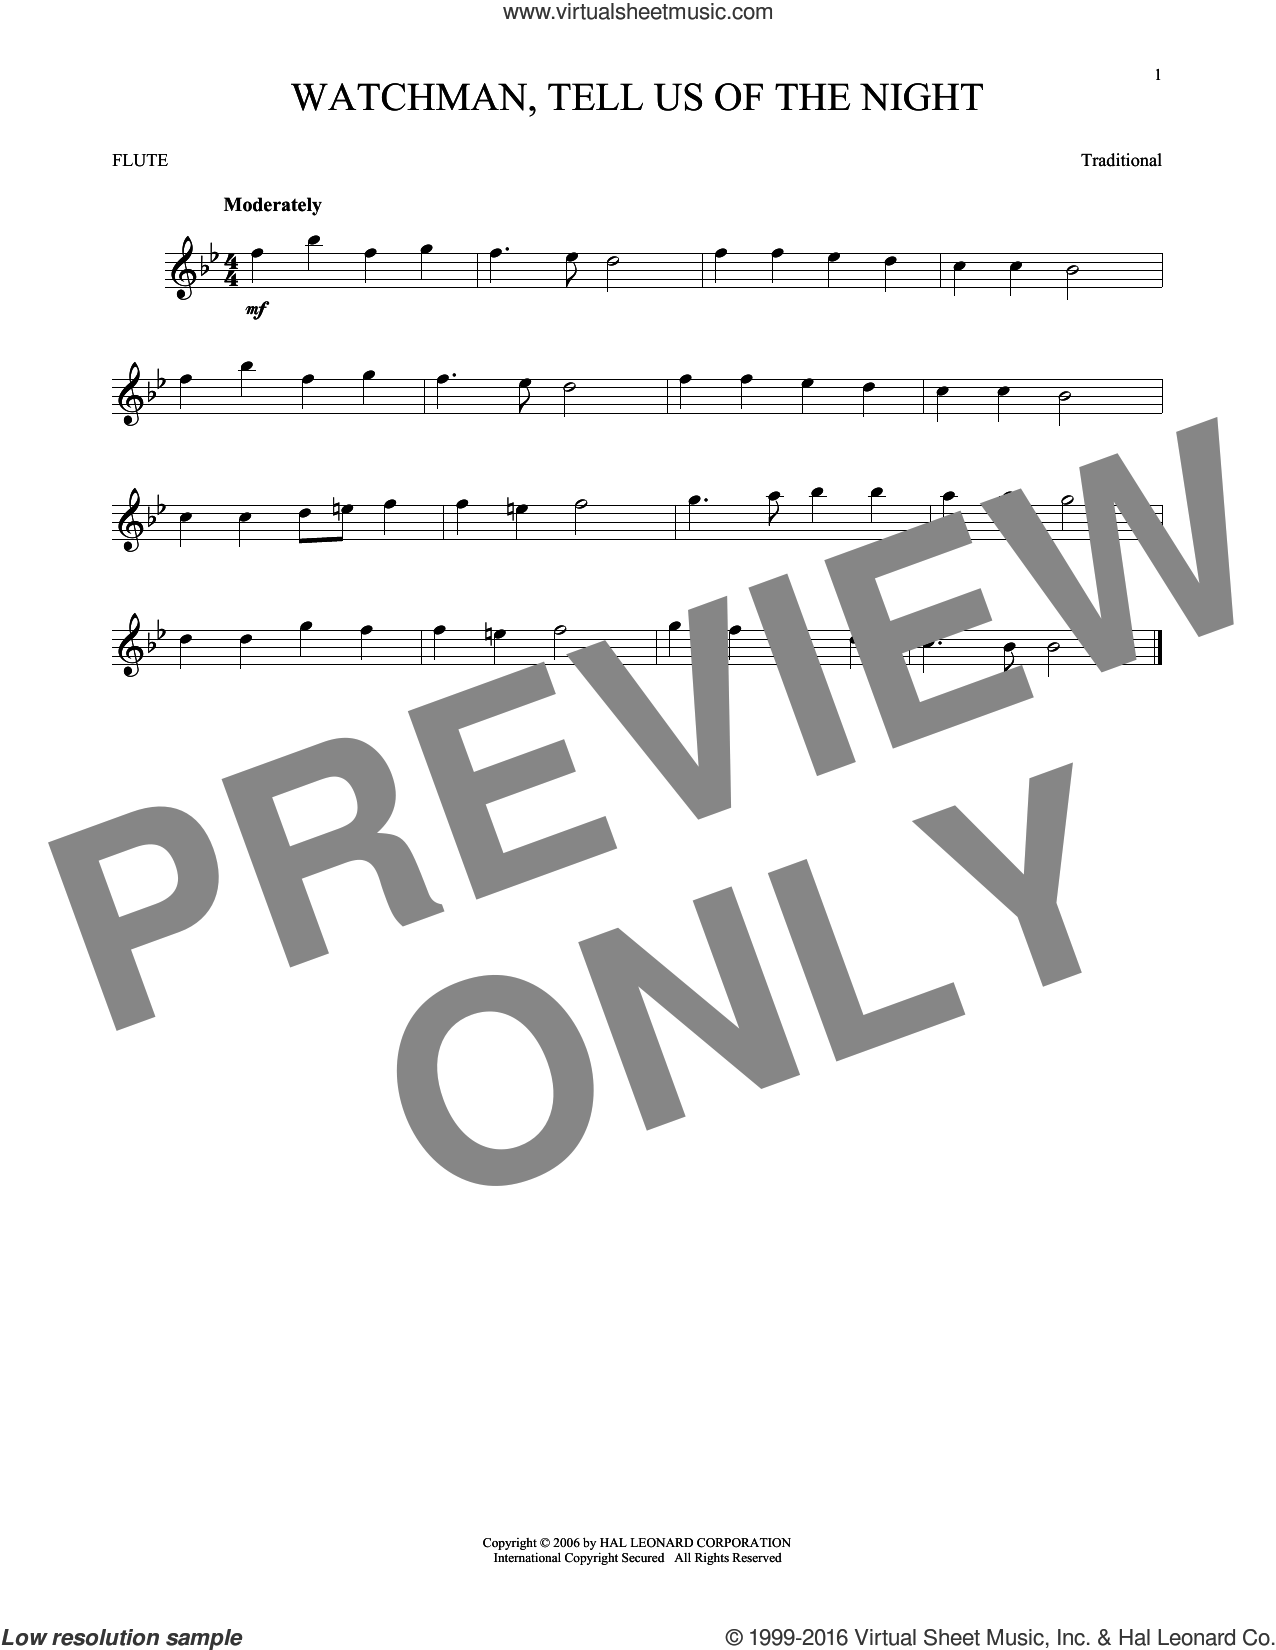 Watchman, Tell Us Of The Night sheet music for flute solo by John Bowring and Miscellaneous. Score Image Preview.